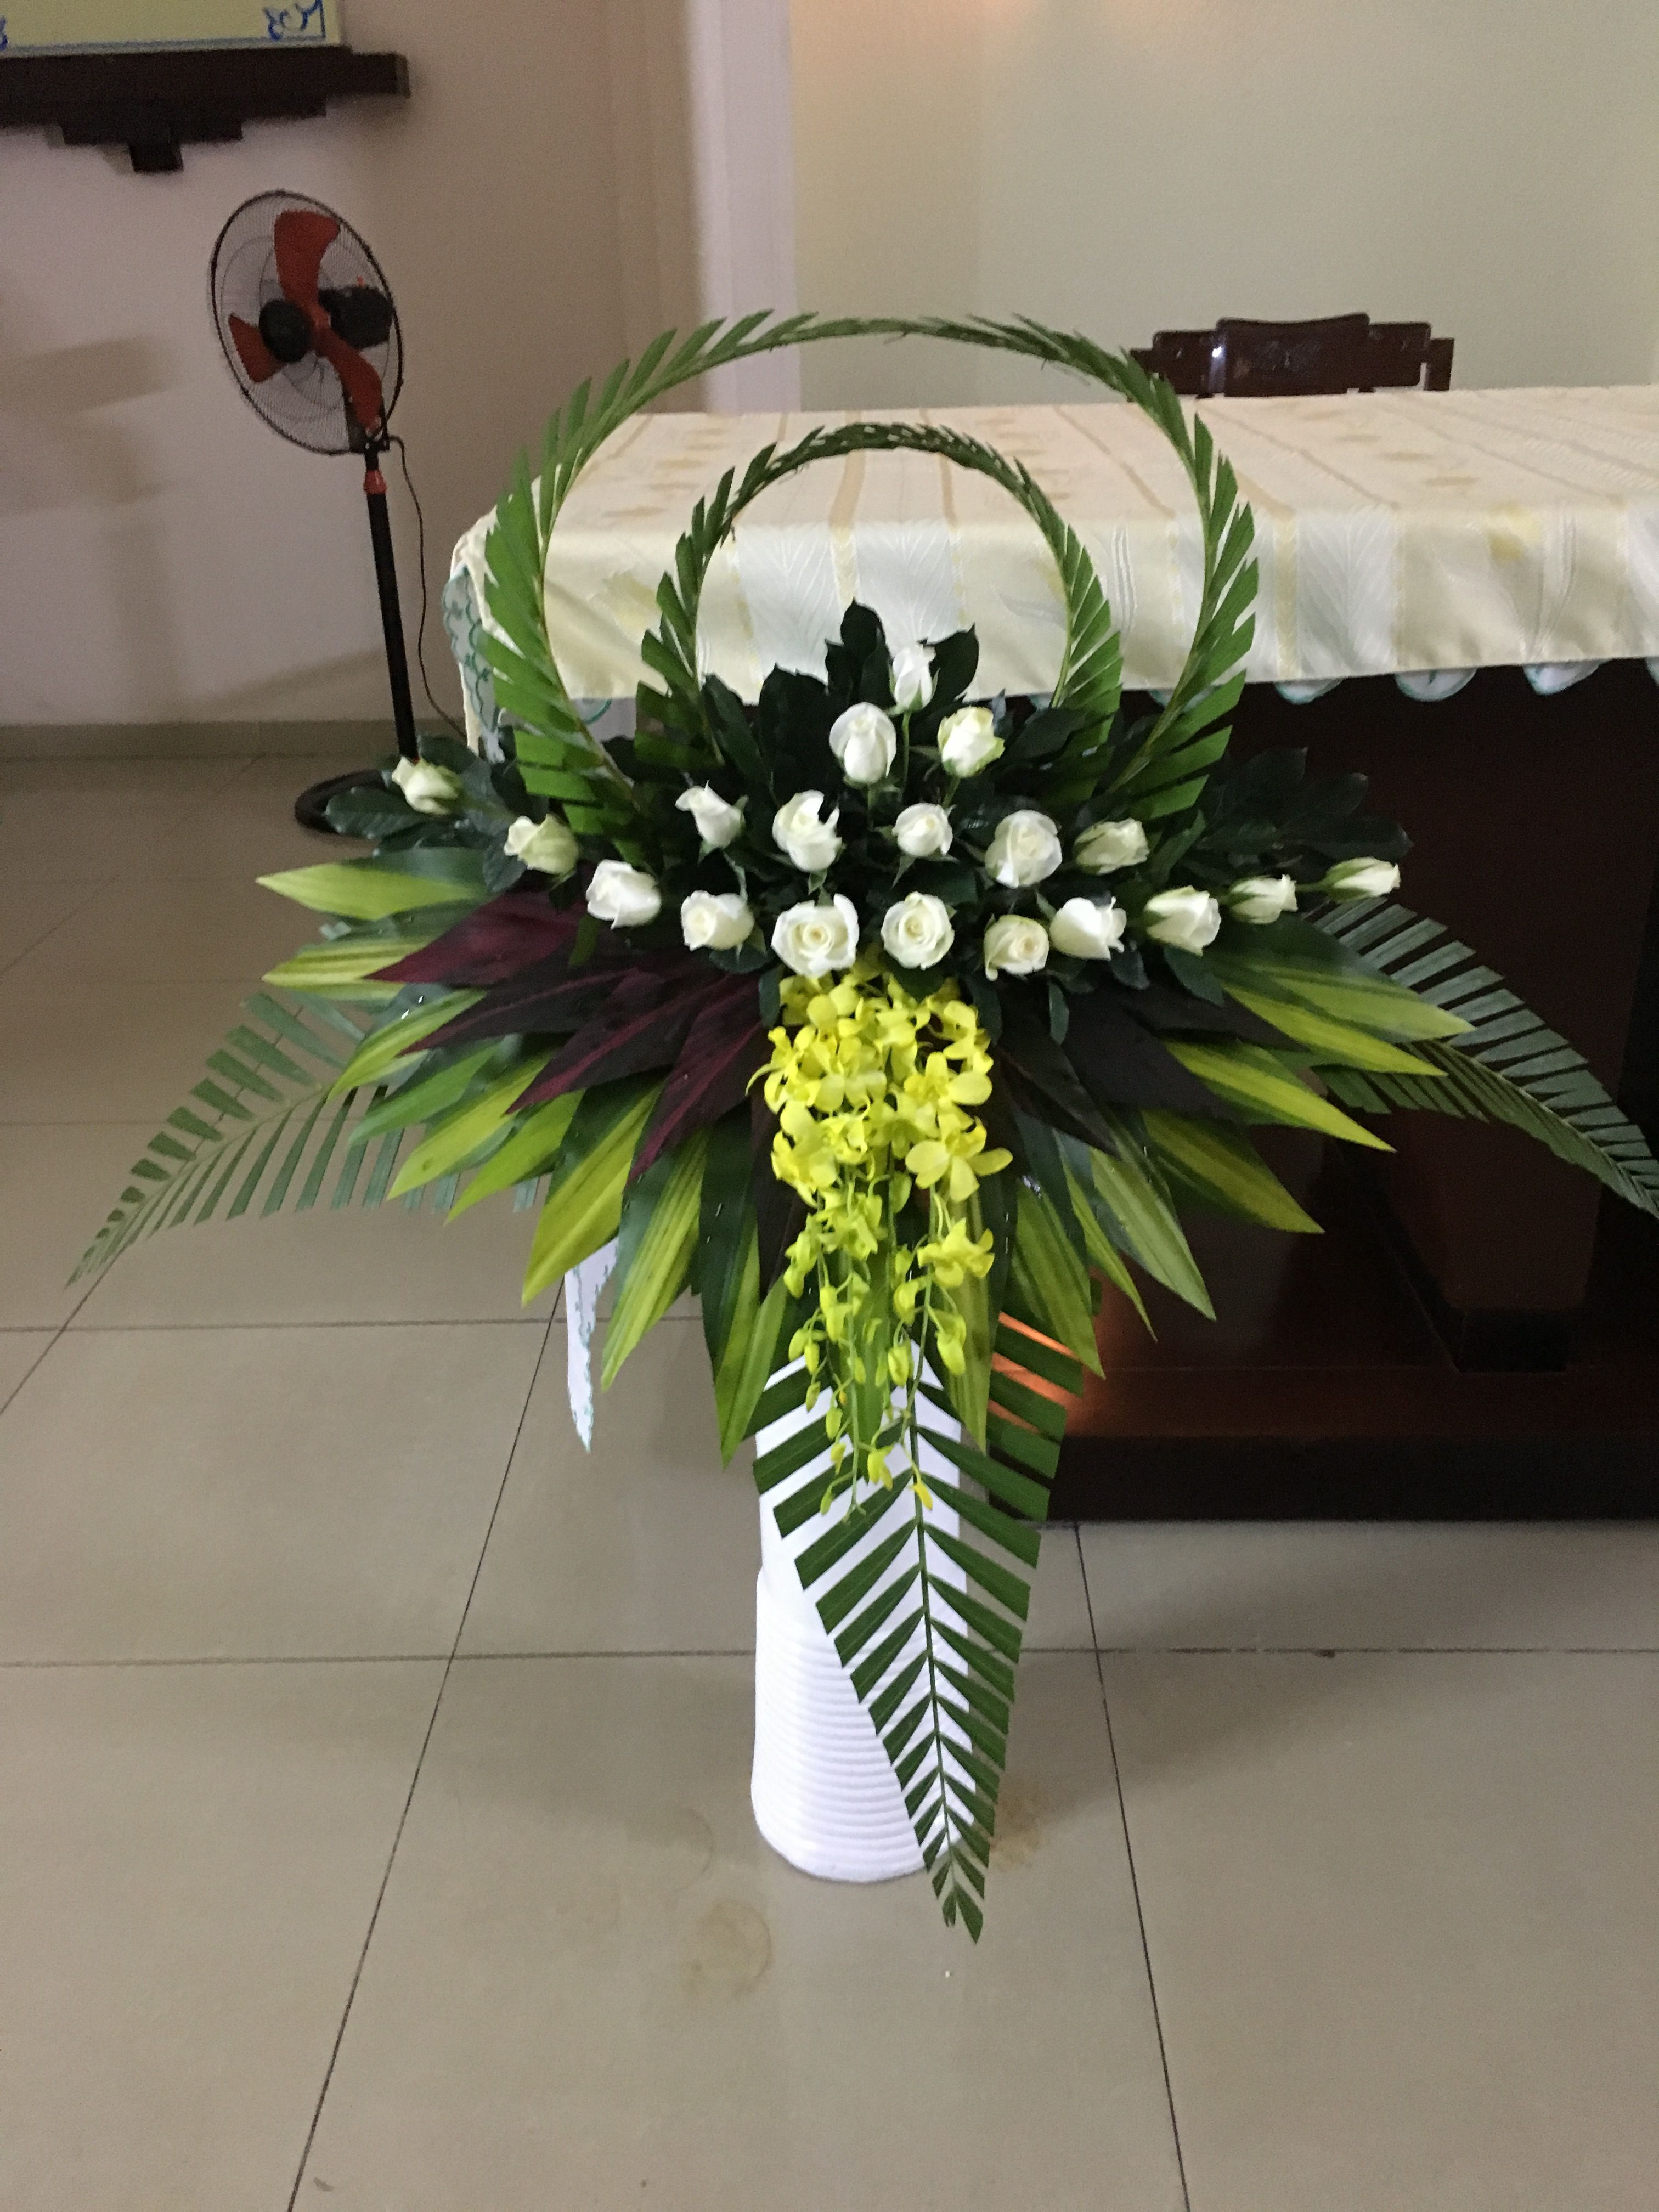 Flower Arrangement Tropical Floral Arrangements Tropical Flower Arrangements Flower Arrangements Simple